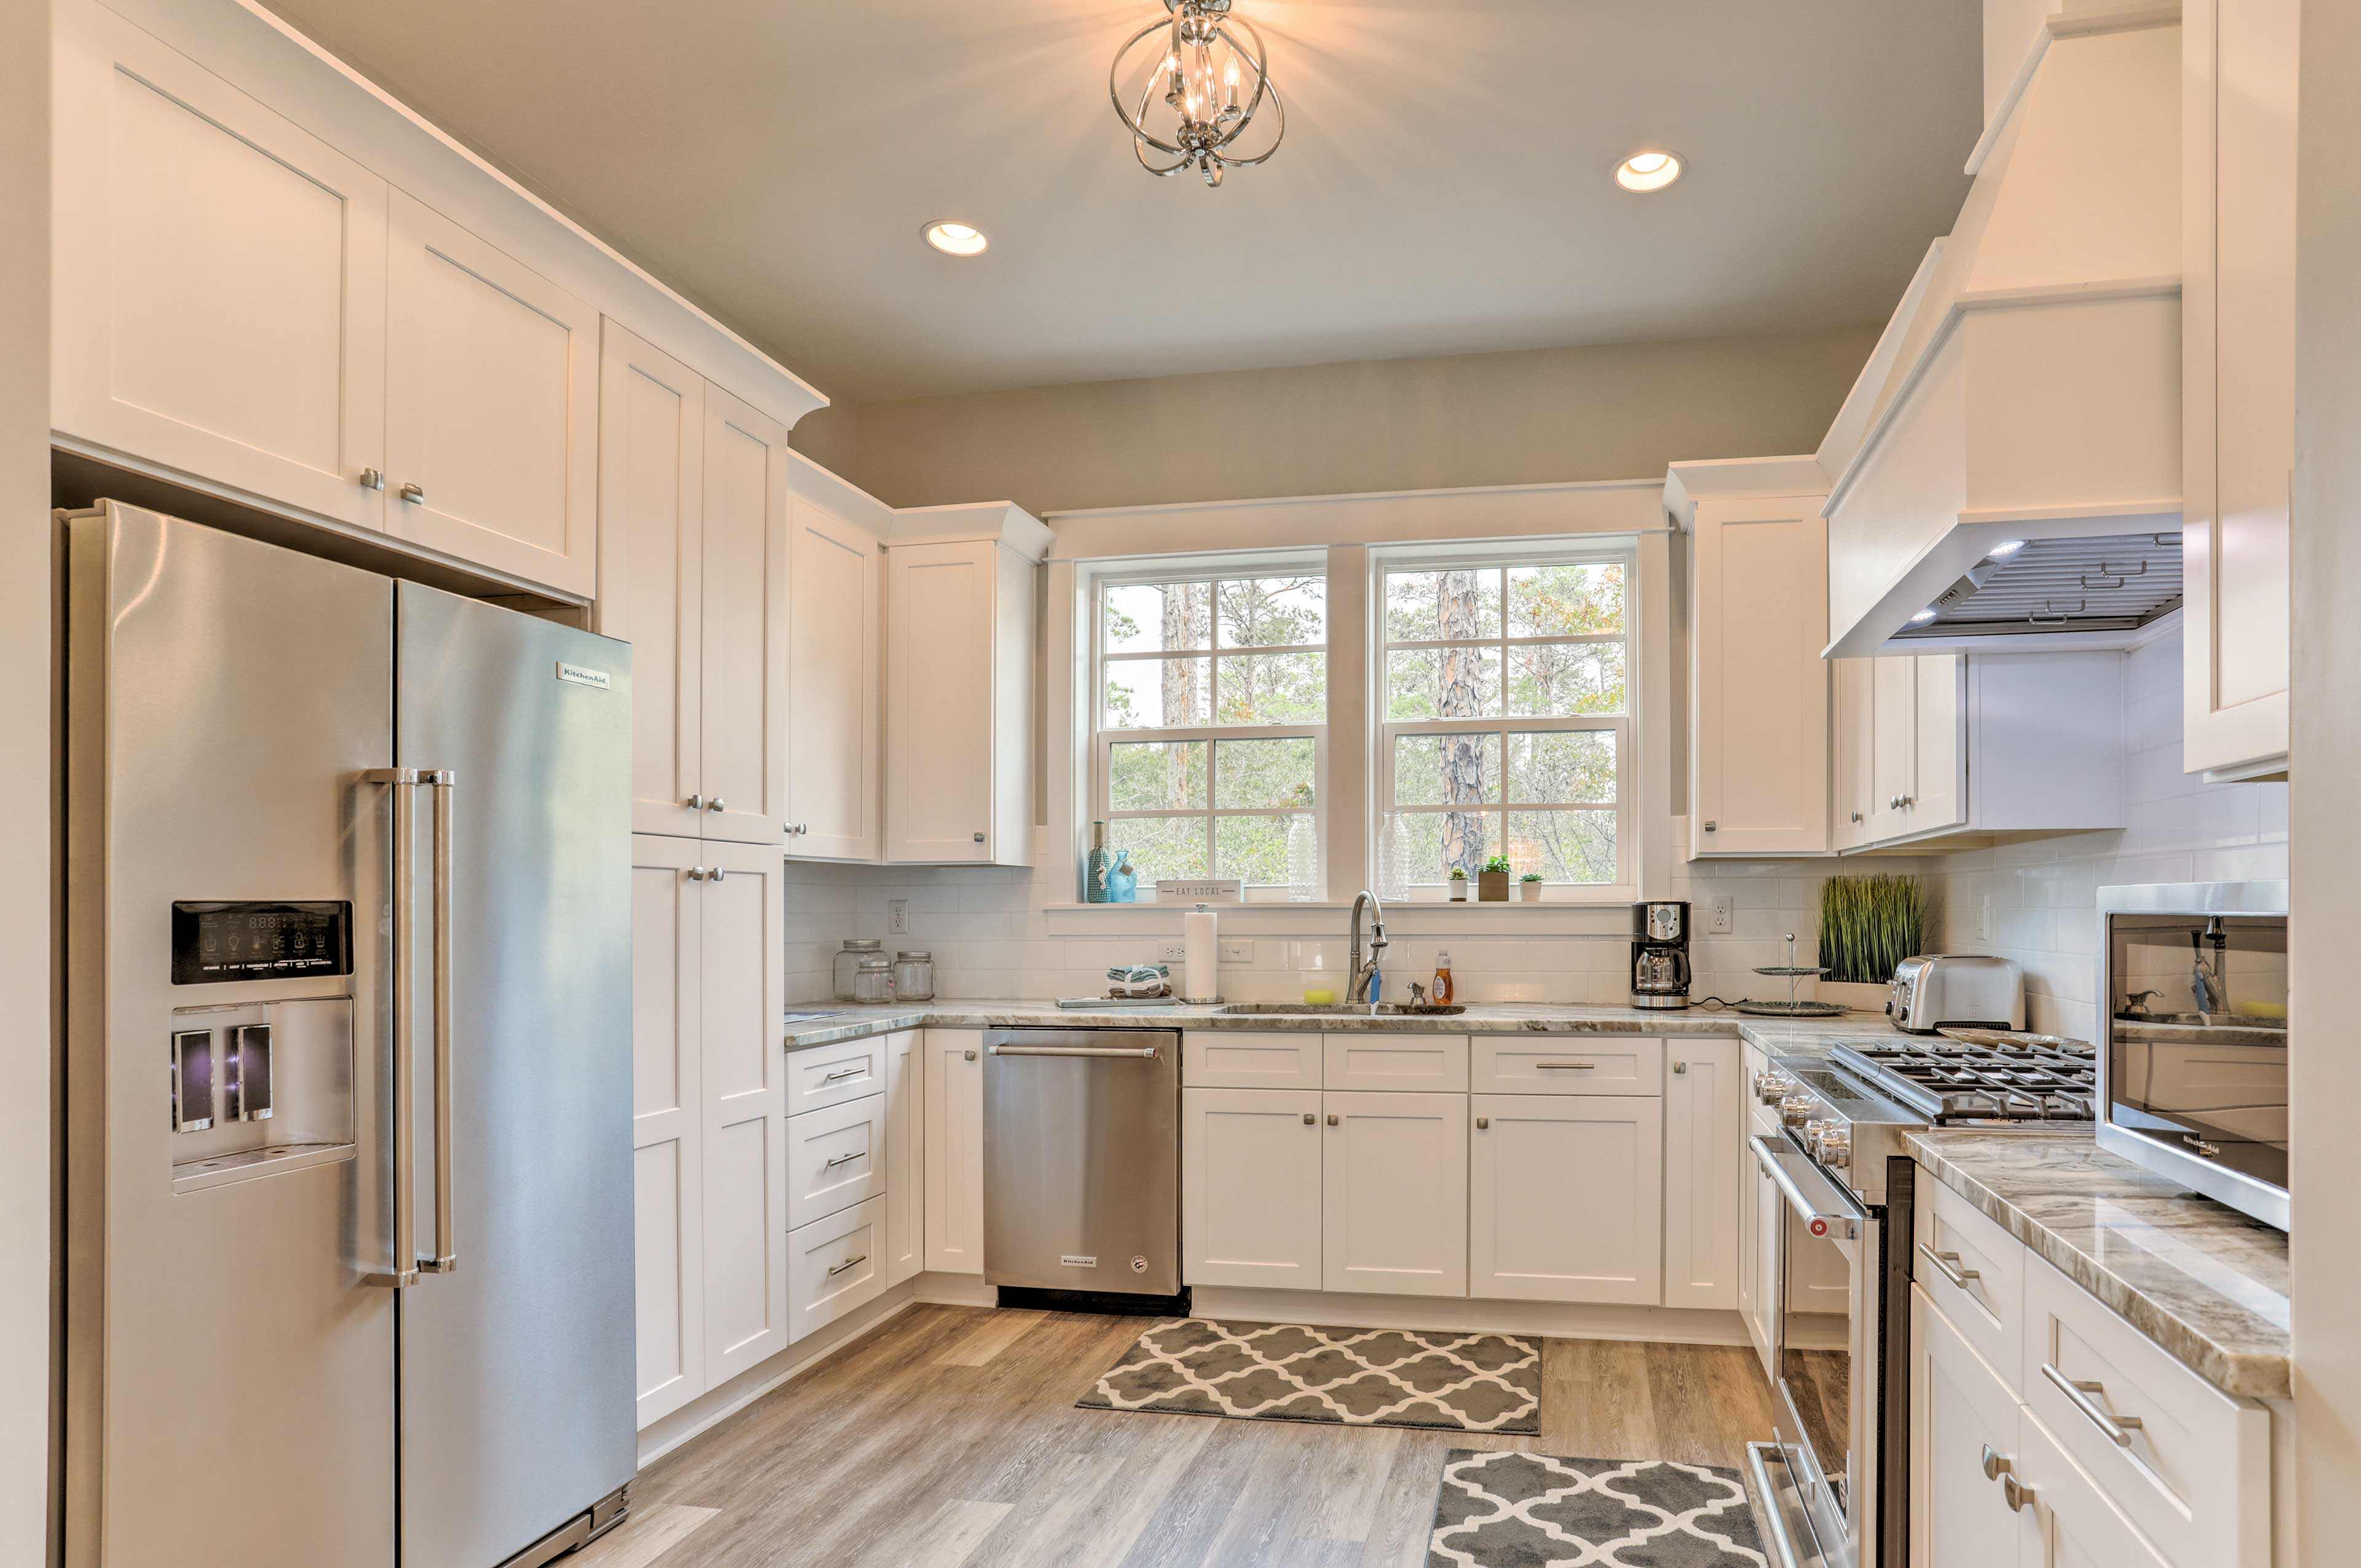 This kitchen makes cooking a dream!